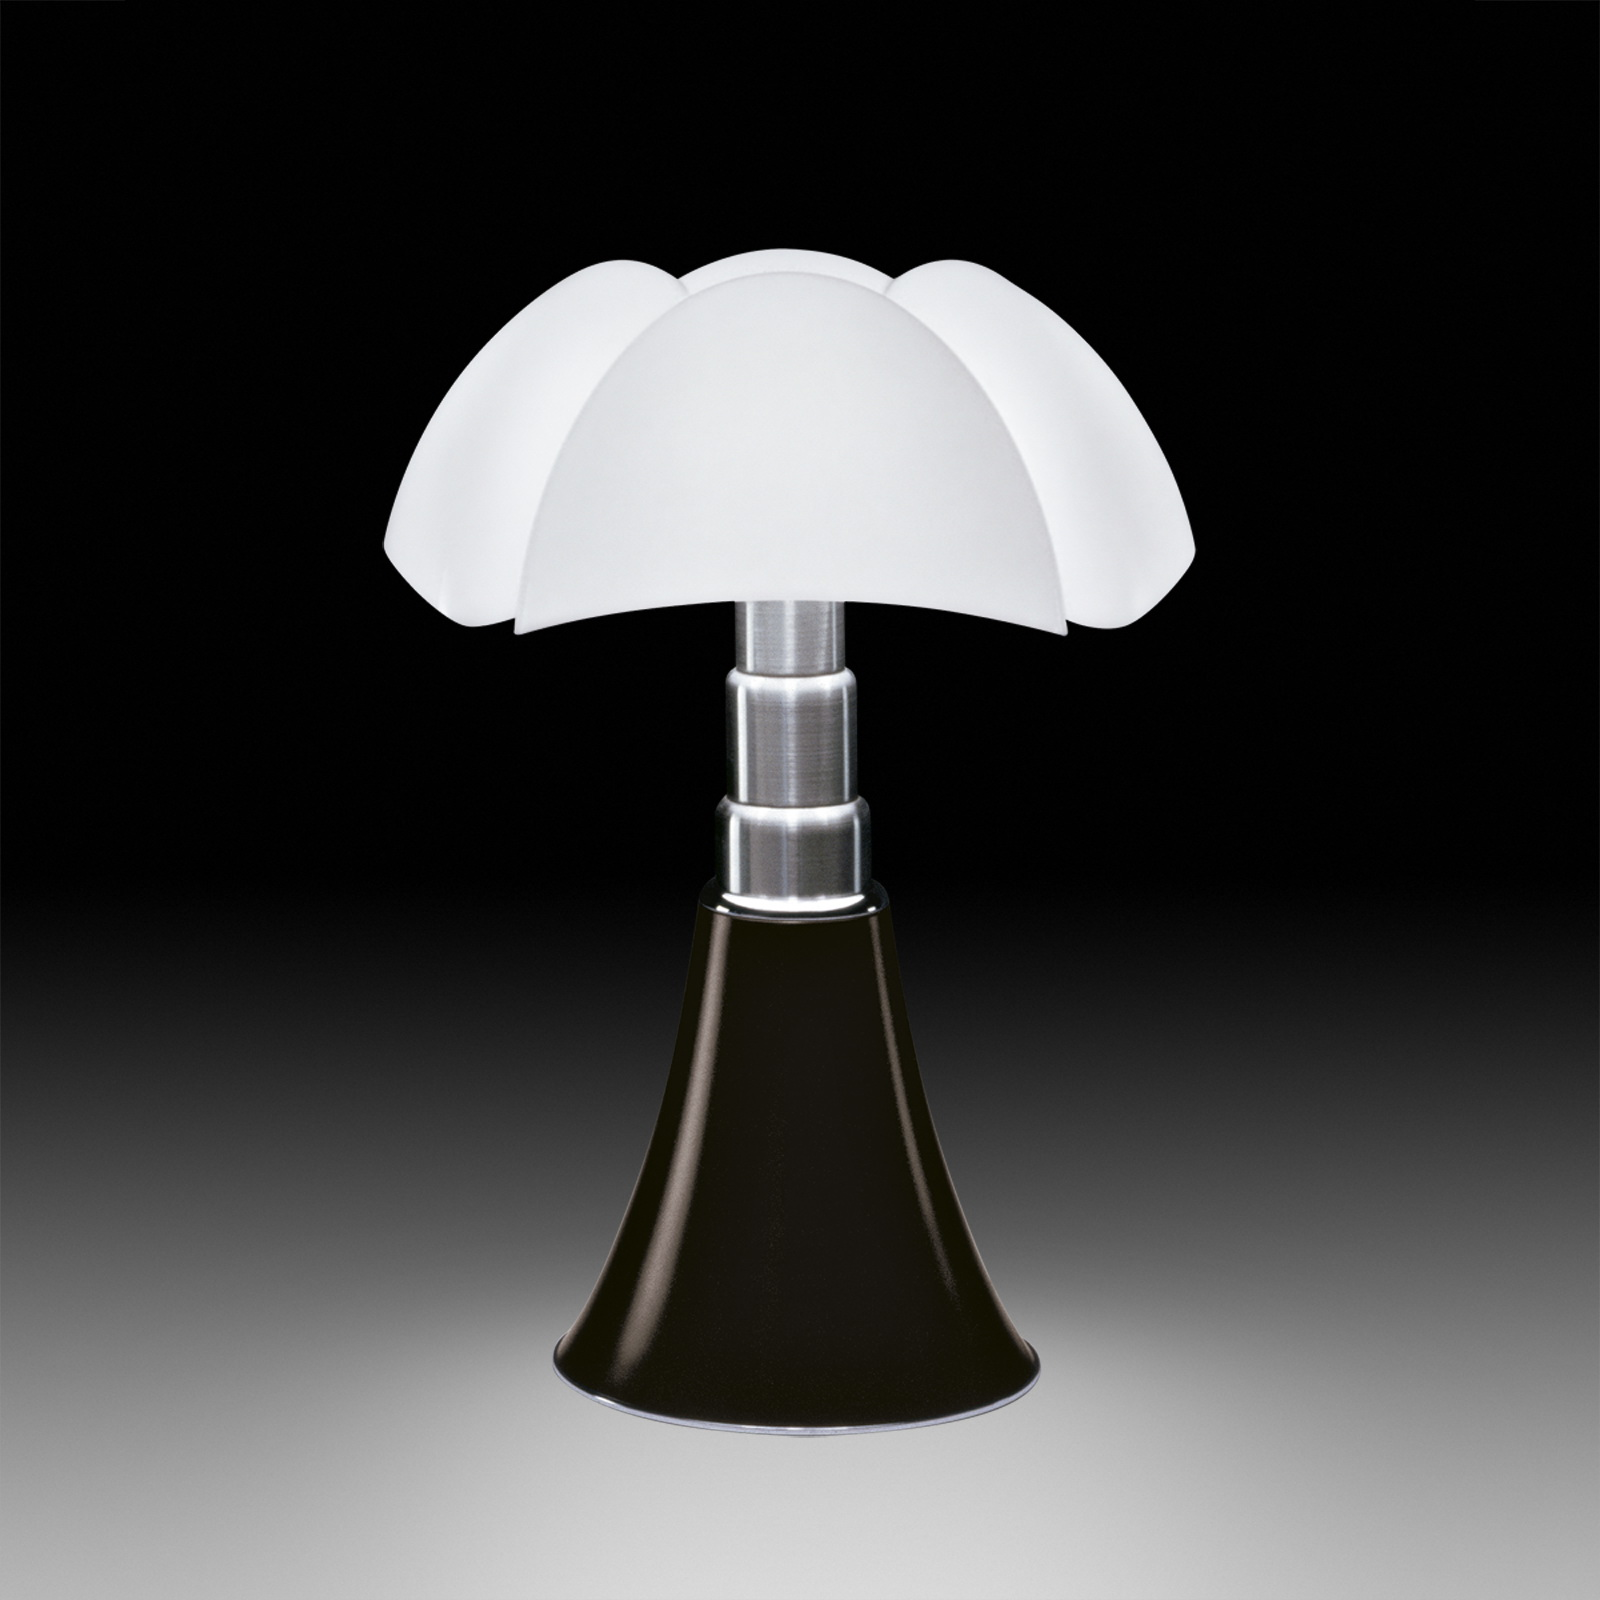 Height adjustable table lamp pipistrello by martinelli luce design gae aulenti - Lampe pipistrello noire ...